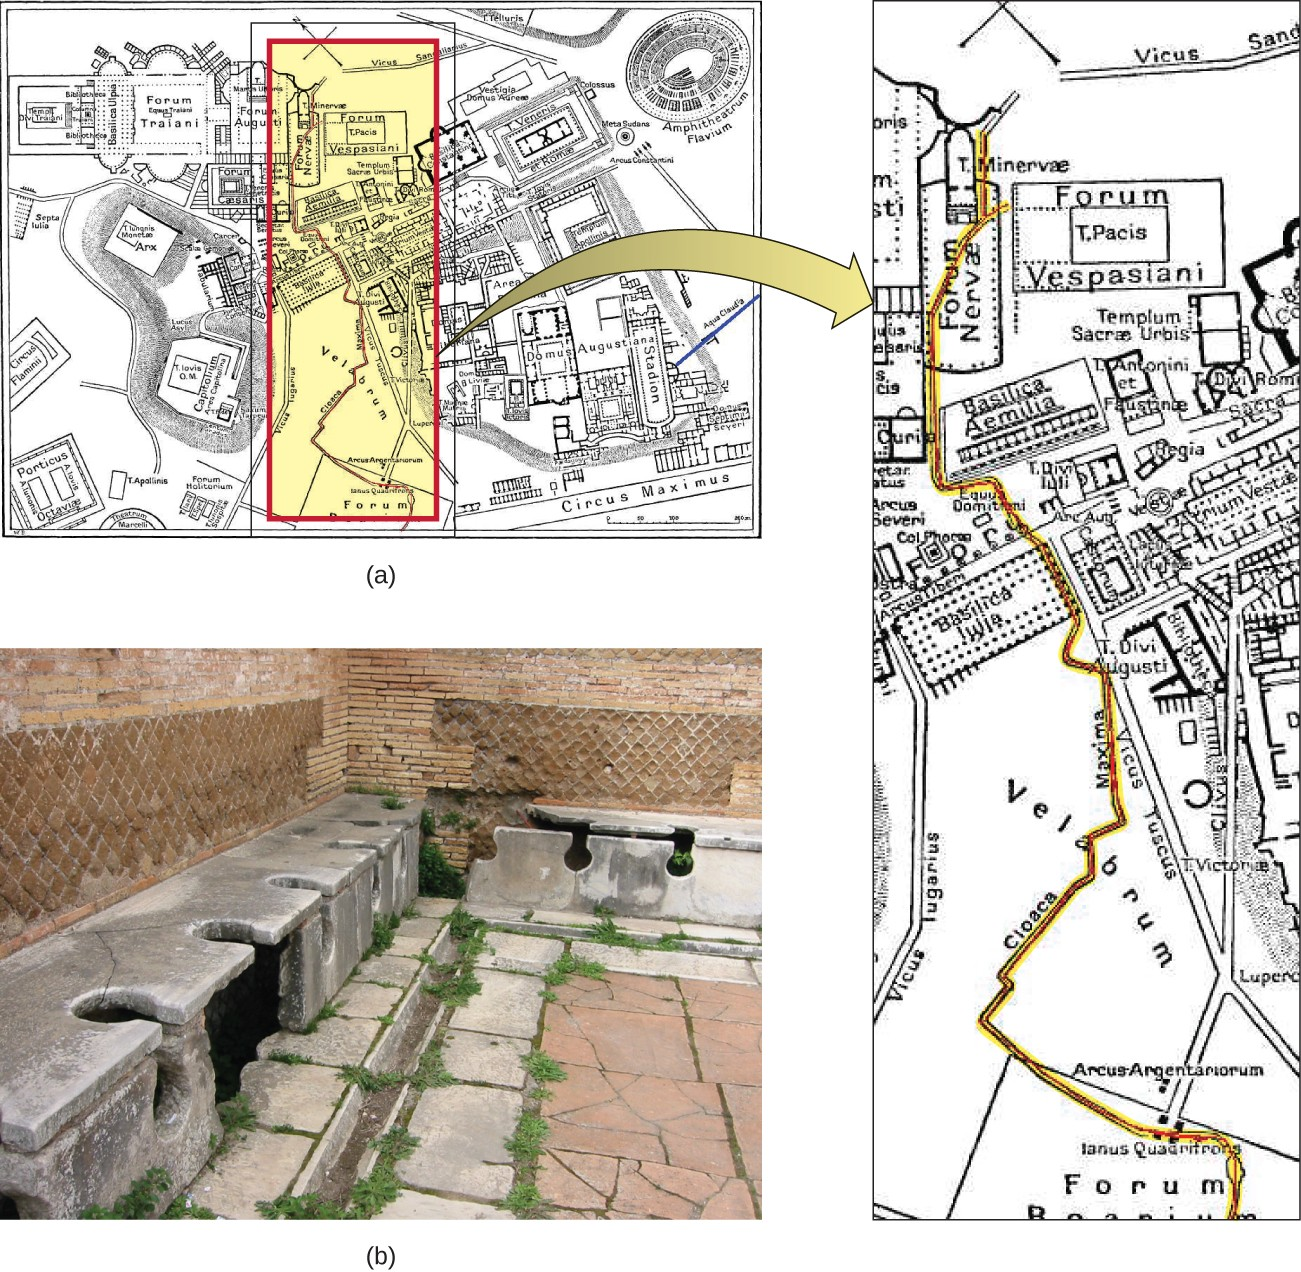 Figurea is a map of a city containing a stadium, forum, and other structures. Running through the center of the city is a red line. Figureb is a photograph of a corner of a room. There is a trough between the walls and the floor. This trough is covered with stone benches that have large holes (as for a toilet) in the bench. The holes span the top and front of the bench. There are six holes visible in the bench that runs along one side of the image and two more in the bench along the other side. The image does not show the entire room so there are likely more available spots in this room.